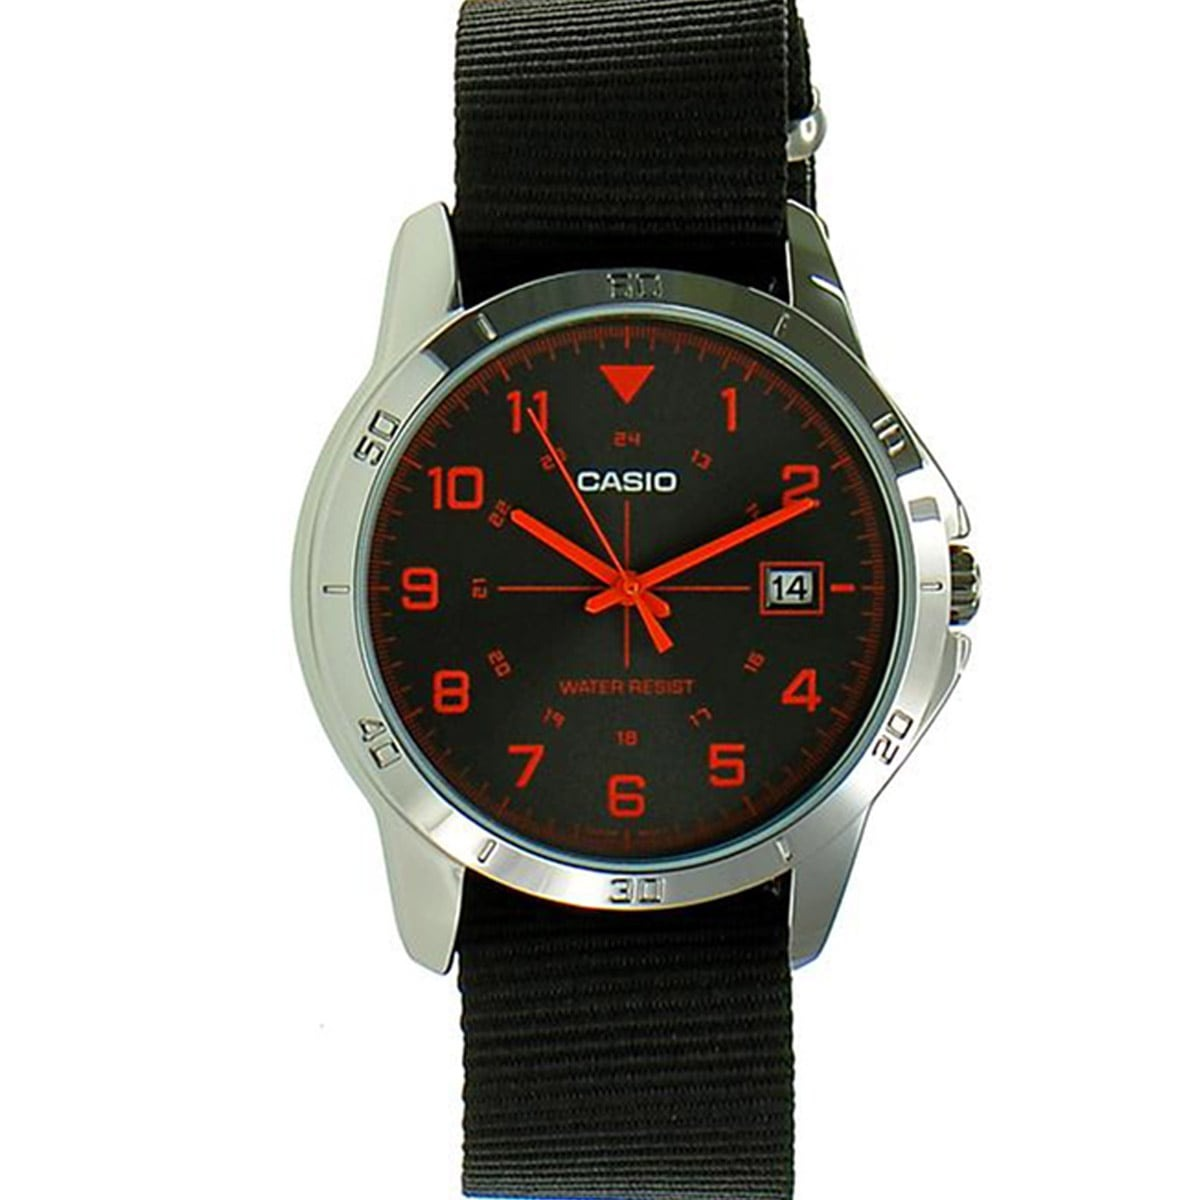 f4e38c8bc11 Relógio Casio Collection Masculino Mtp-v008b-1budf - R  149